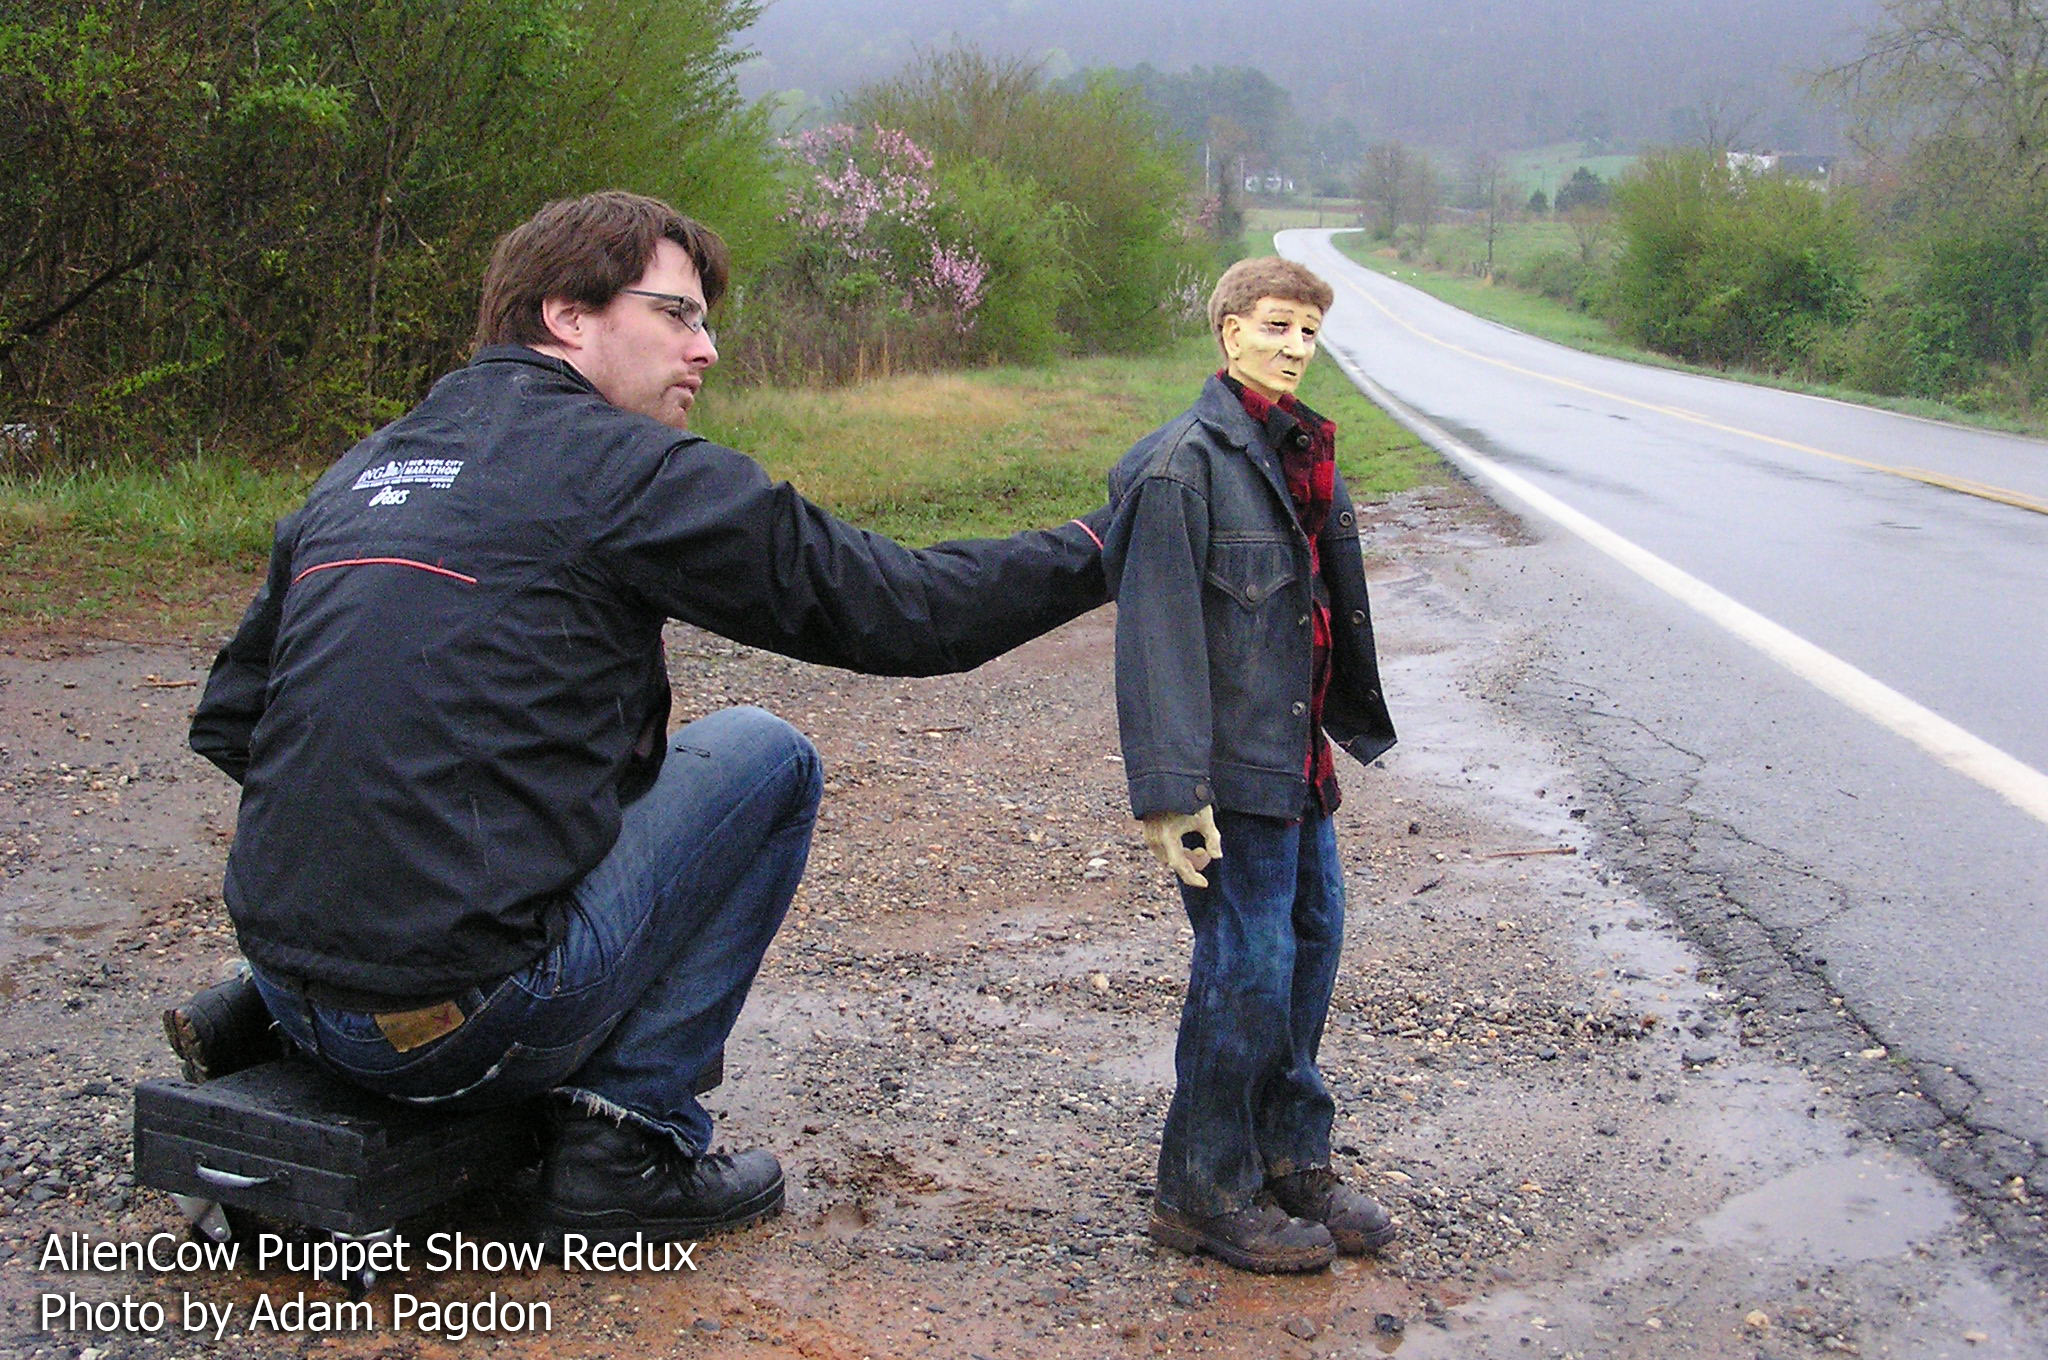 AlienCow puppet show-farmer by the road.jpg